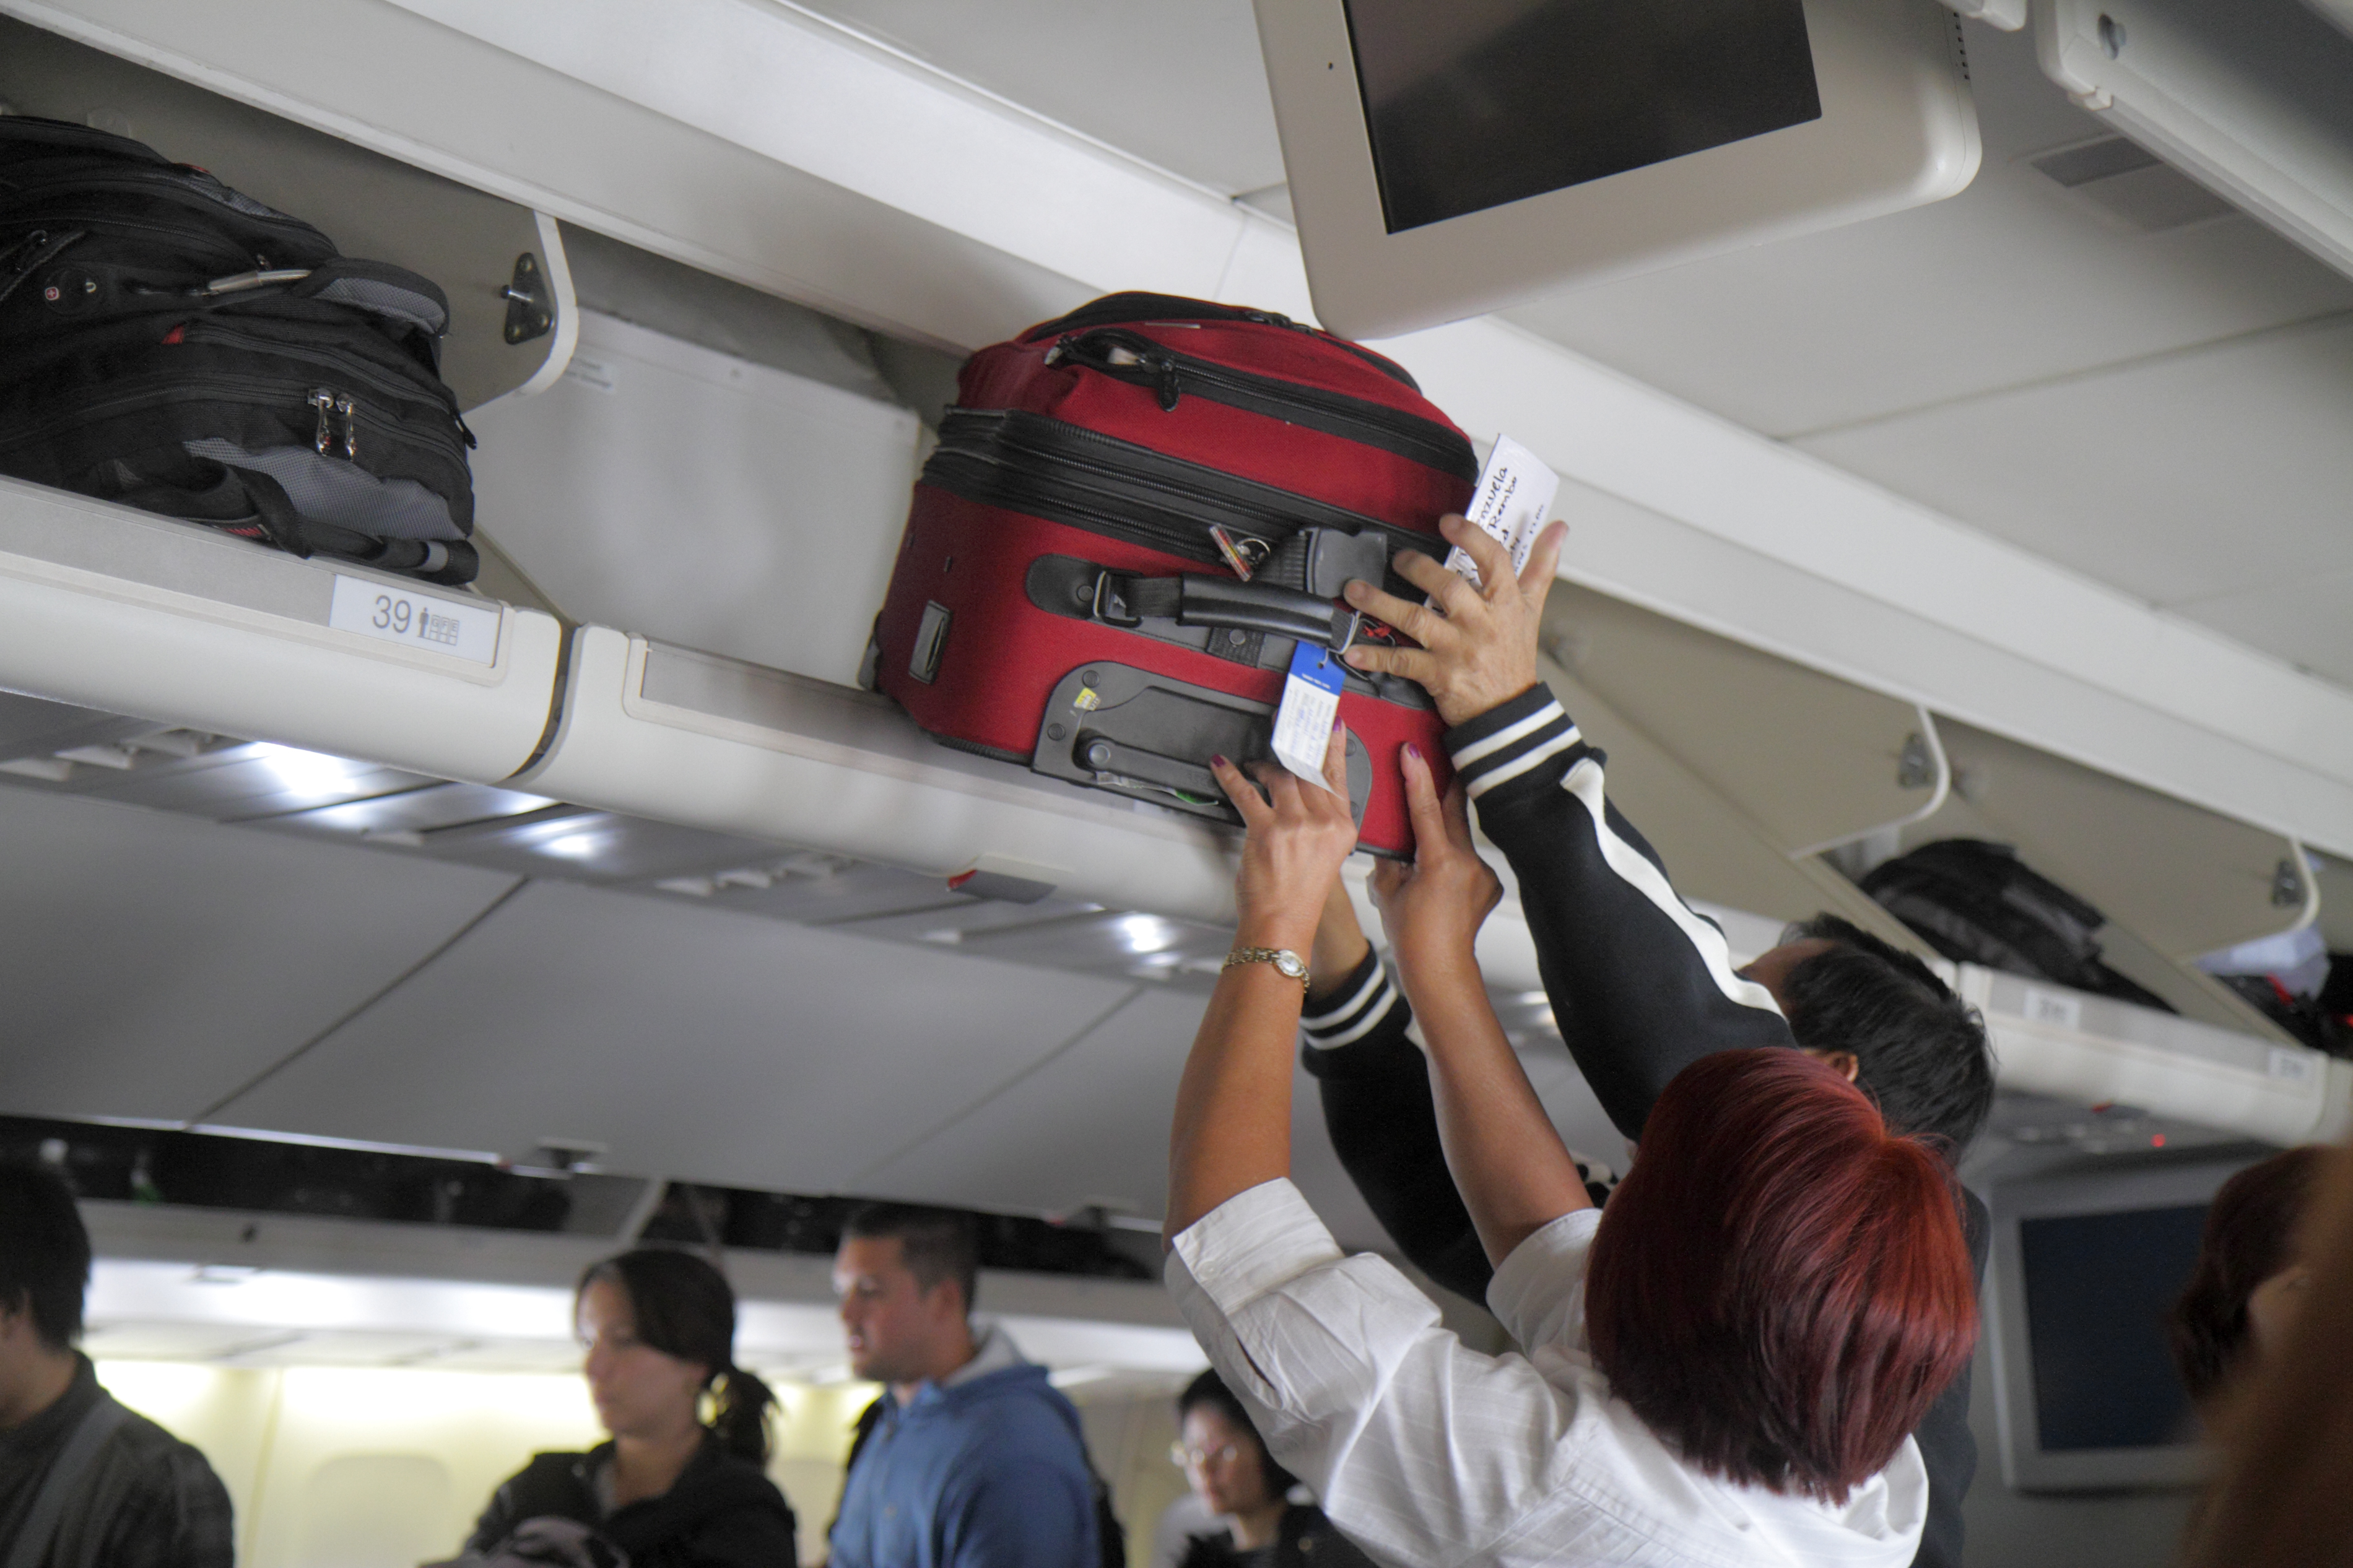 United commercial airliner cabin man woman overhead luggage bin suitcases